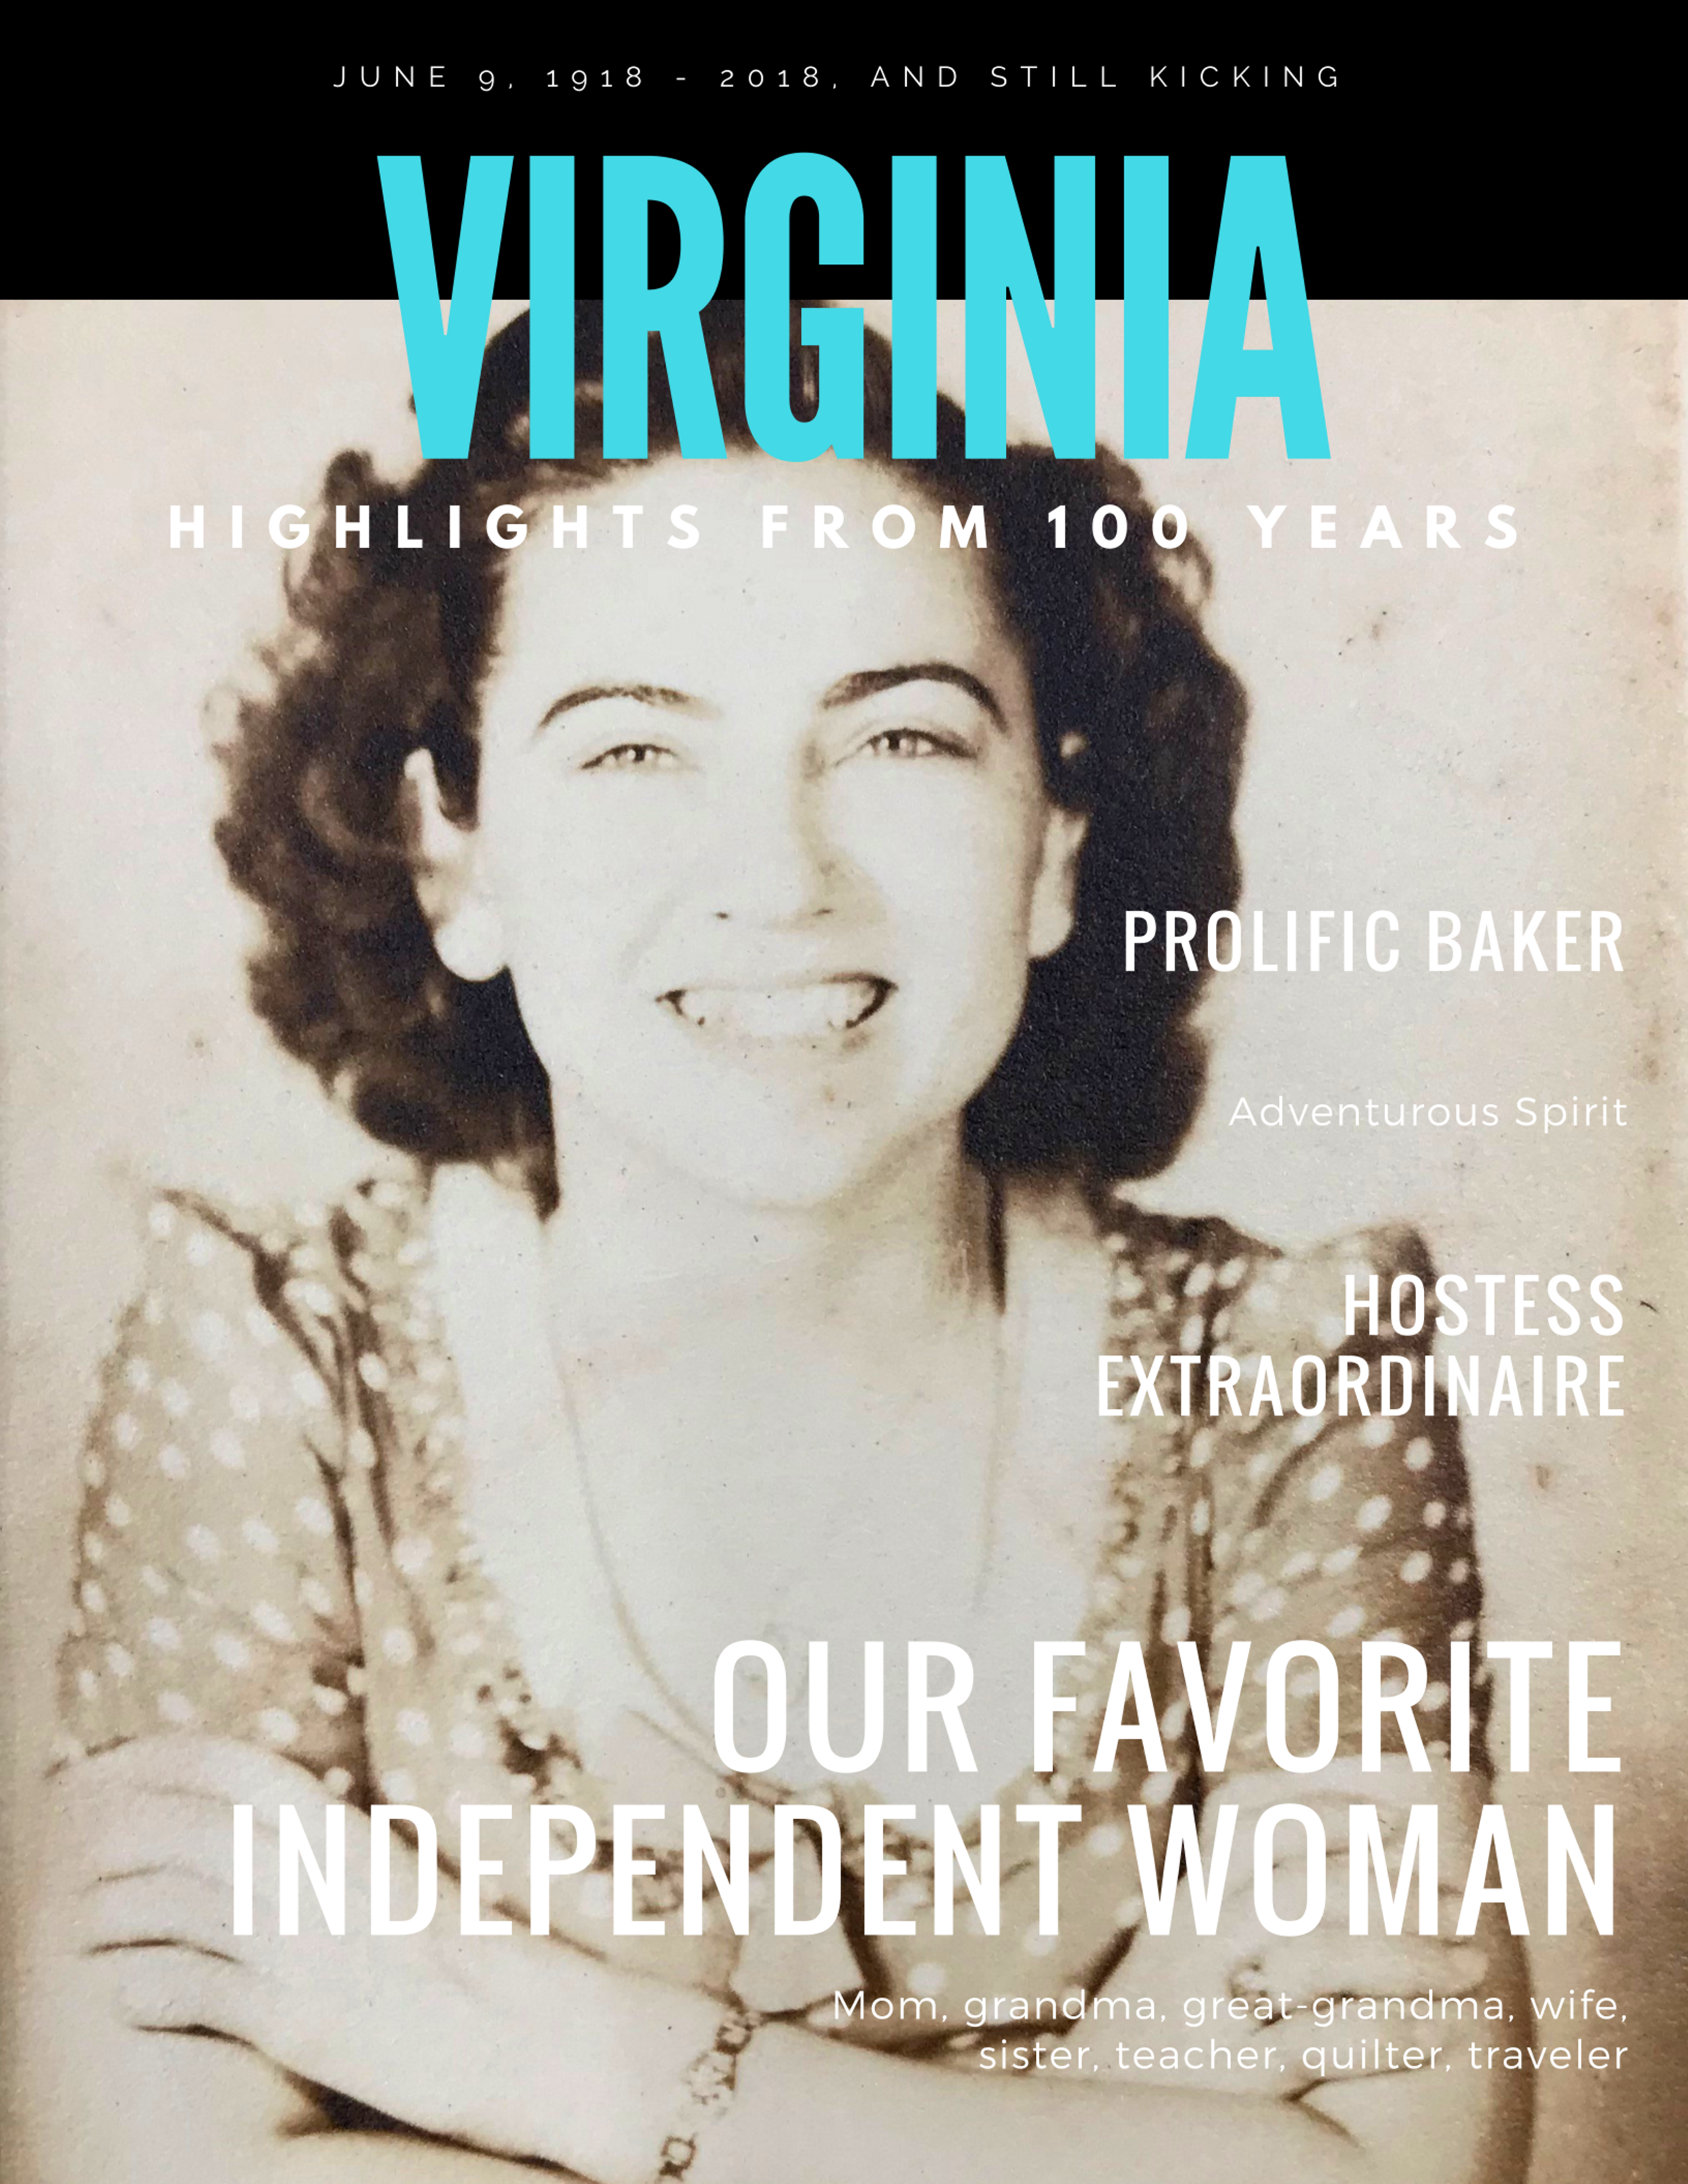 Cover of the book I put together talking about my grandmother's 100 years of adventures and accomplishments (gift to her and descendants).